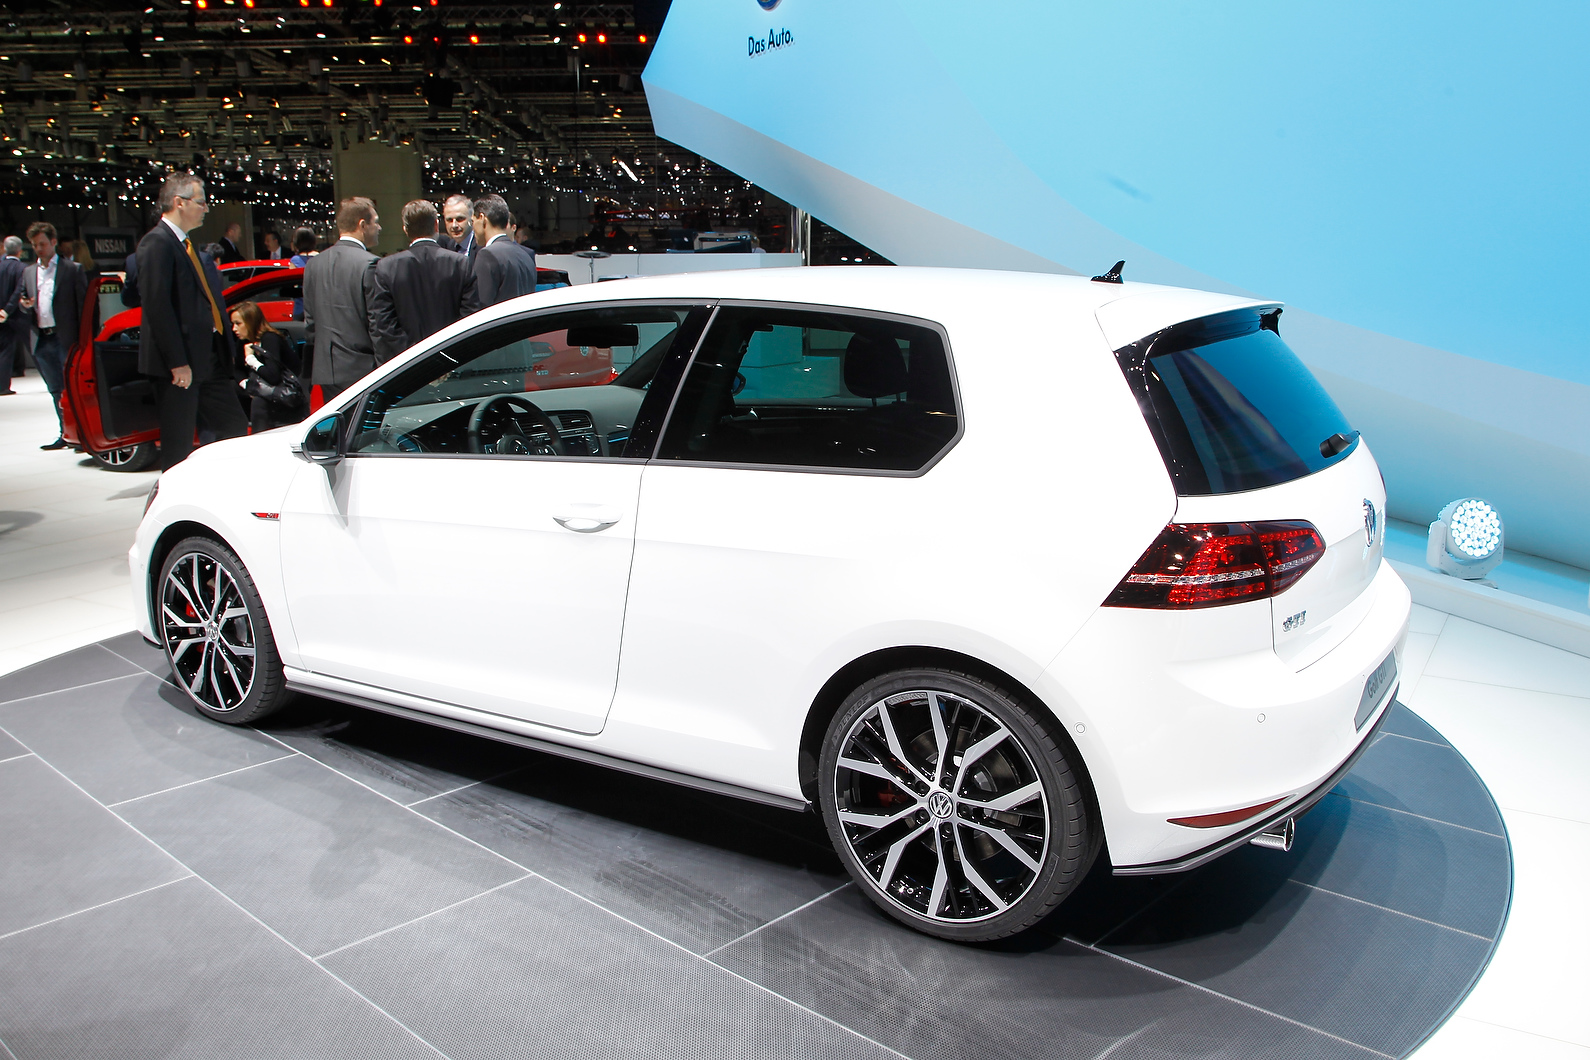 Also on display was the Golf R-Line.